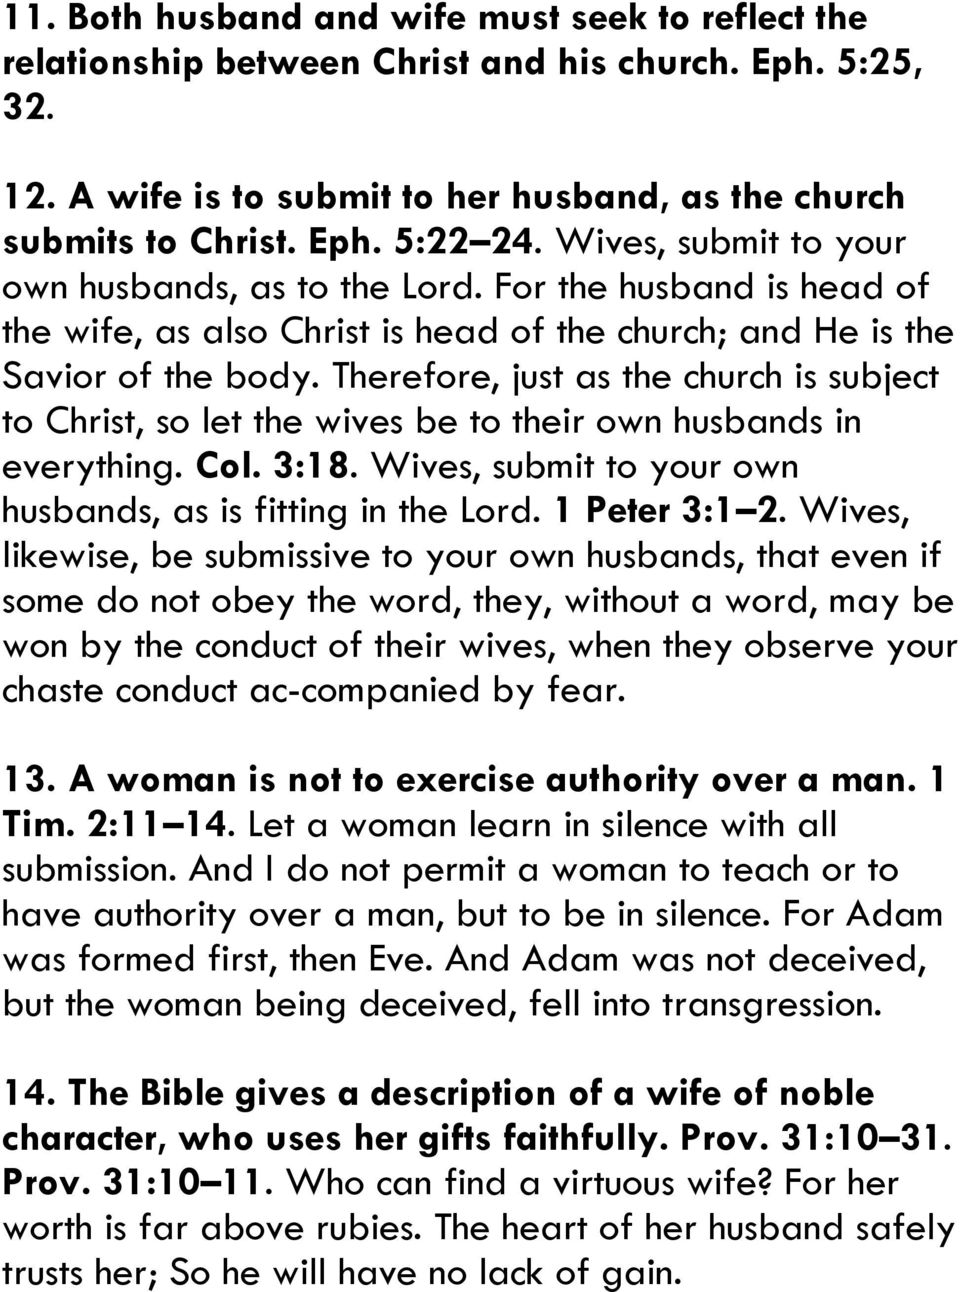 Therefore, just as the church is subject to Christ, so let the wives be to their own husbands in everything. Col. 3:18. Wives, submit to your own husbands, as is fitting in the Lord. 1 Peter 3:1 2.